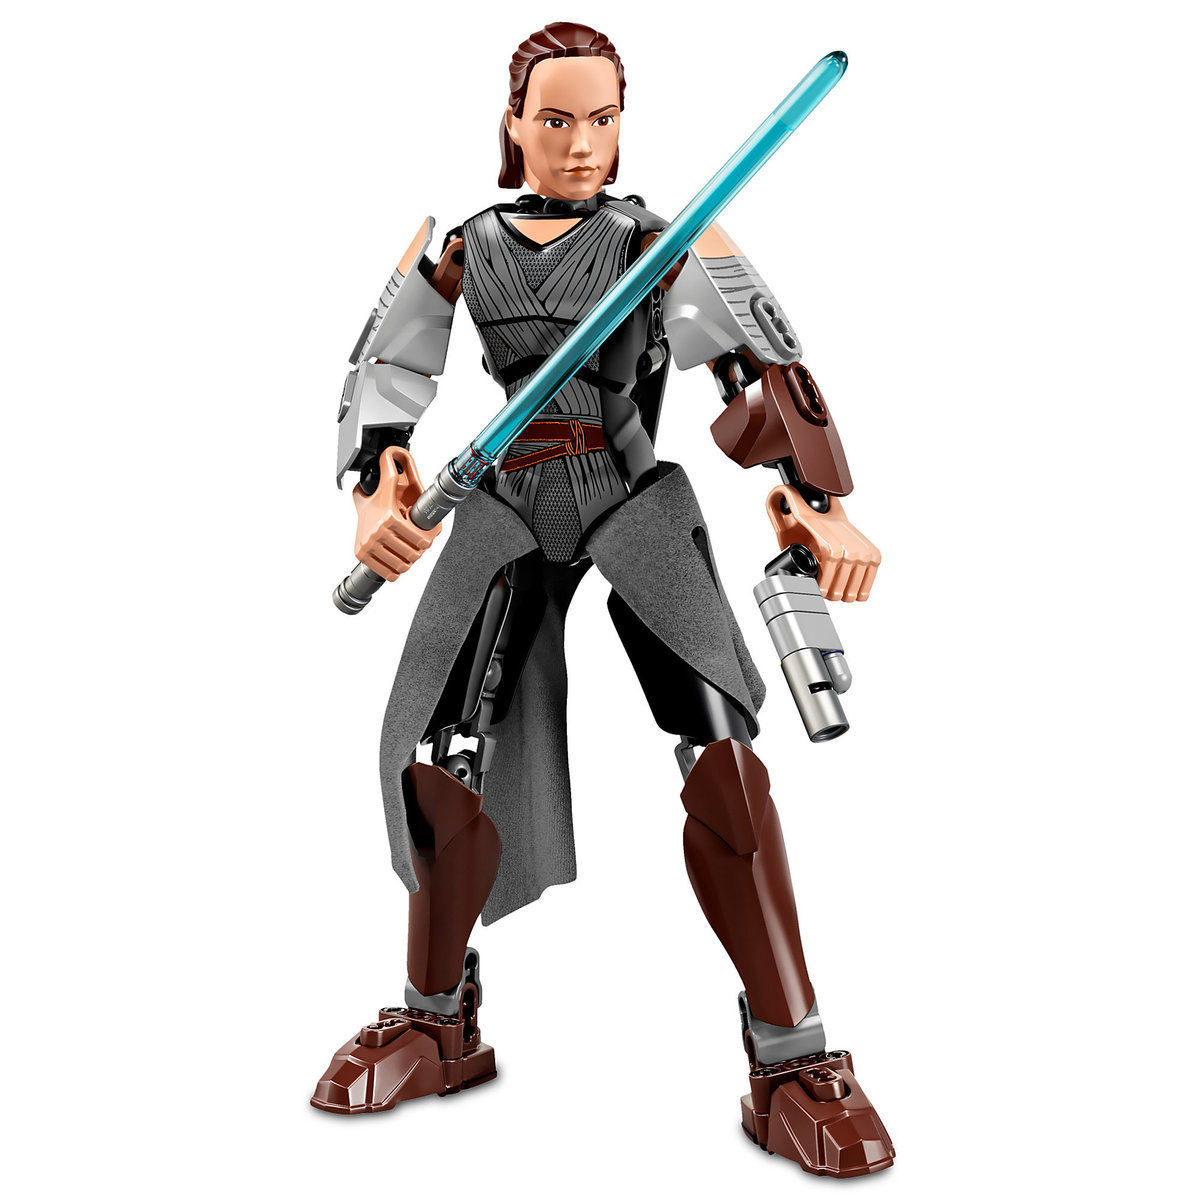 35e1c9a1f4d4 Product Image of Rey Figure by LEGO - Star Wars: The Last Jedi # 1